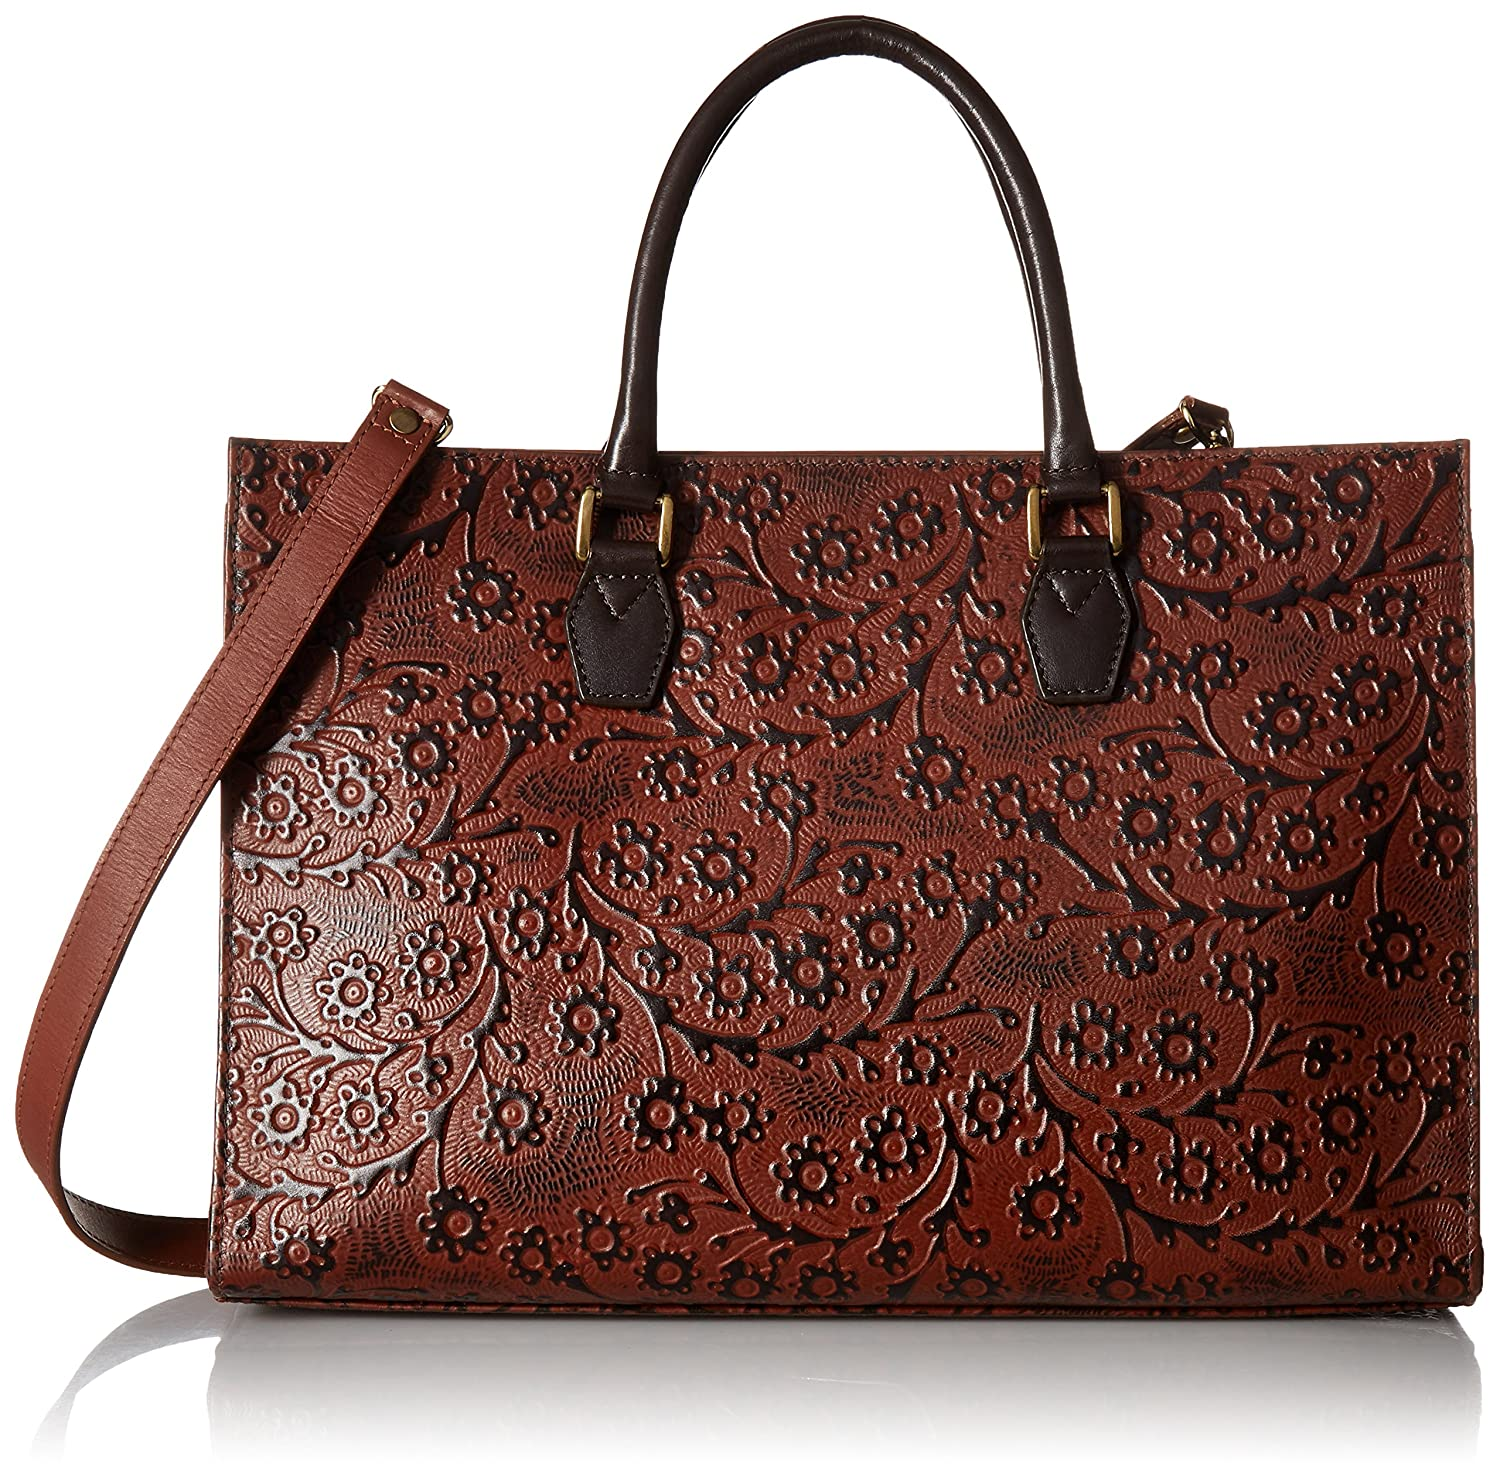 89bb5e083 Scully Floral Embossed Tan Leather Shoulder Bag (Tan): Handbags: Amazon.com